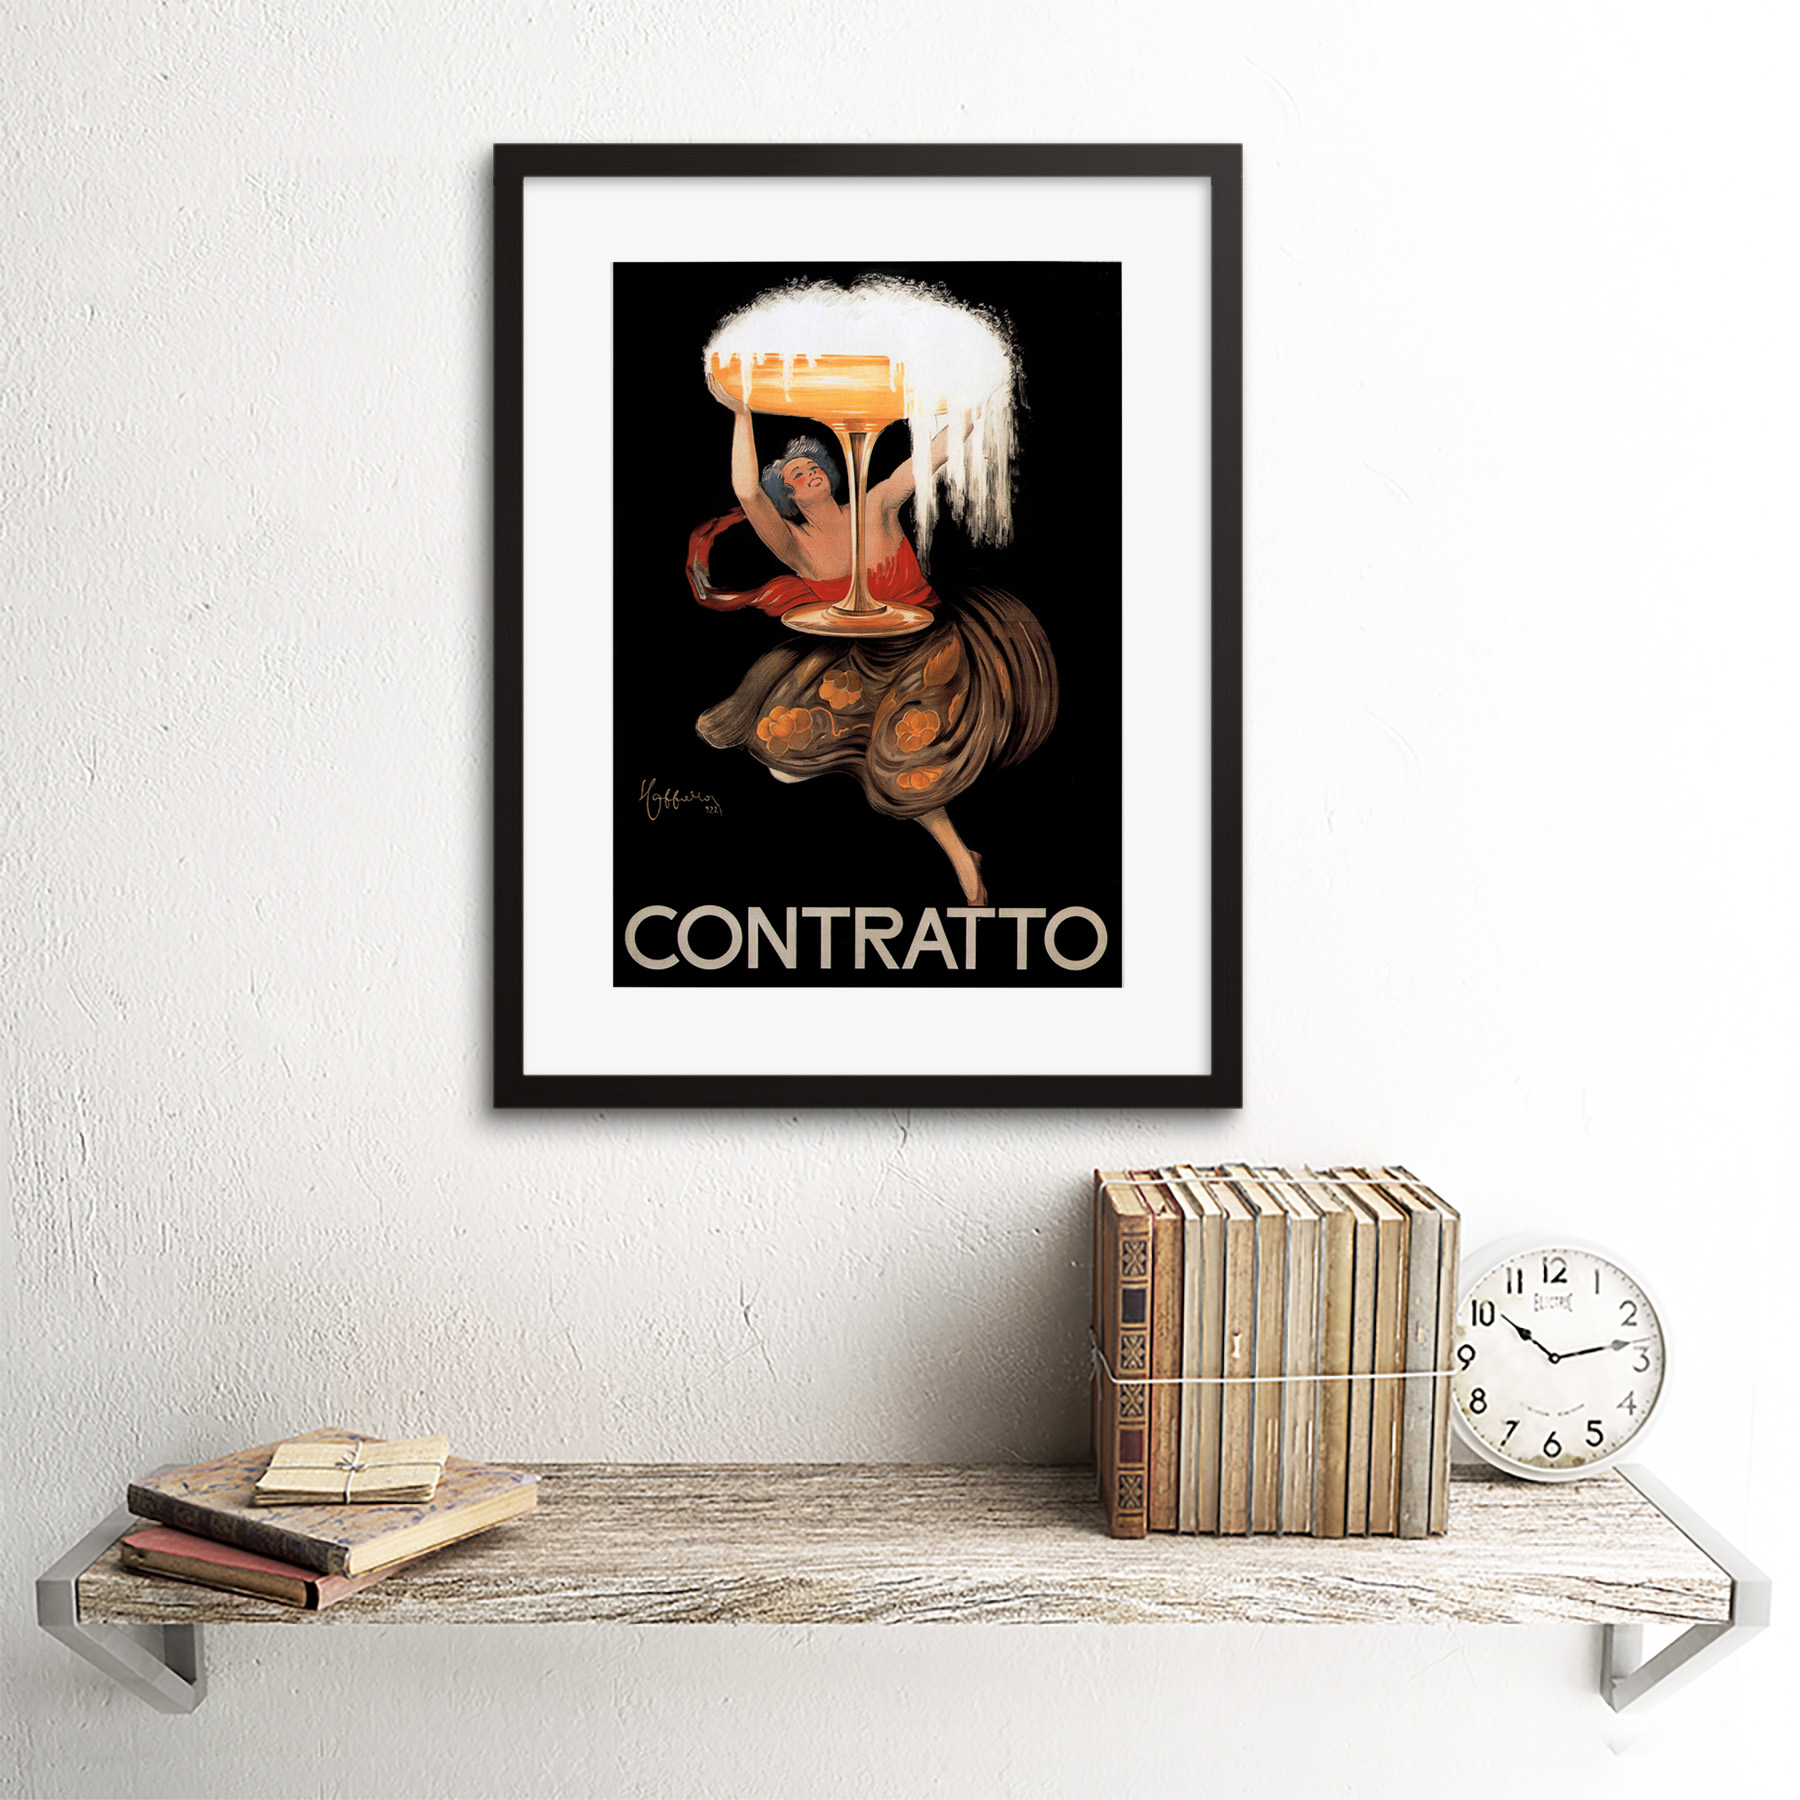 ADVERT CHAMPAGNE CONTRATTO ITALY DRINK ALCOHOL BLACK FRAMED ART PRINT B12X4144